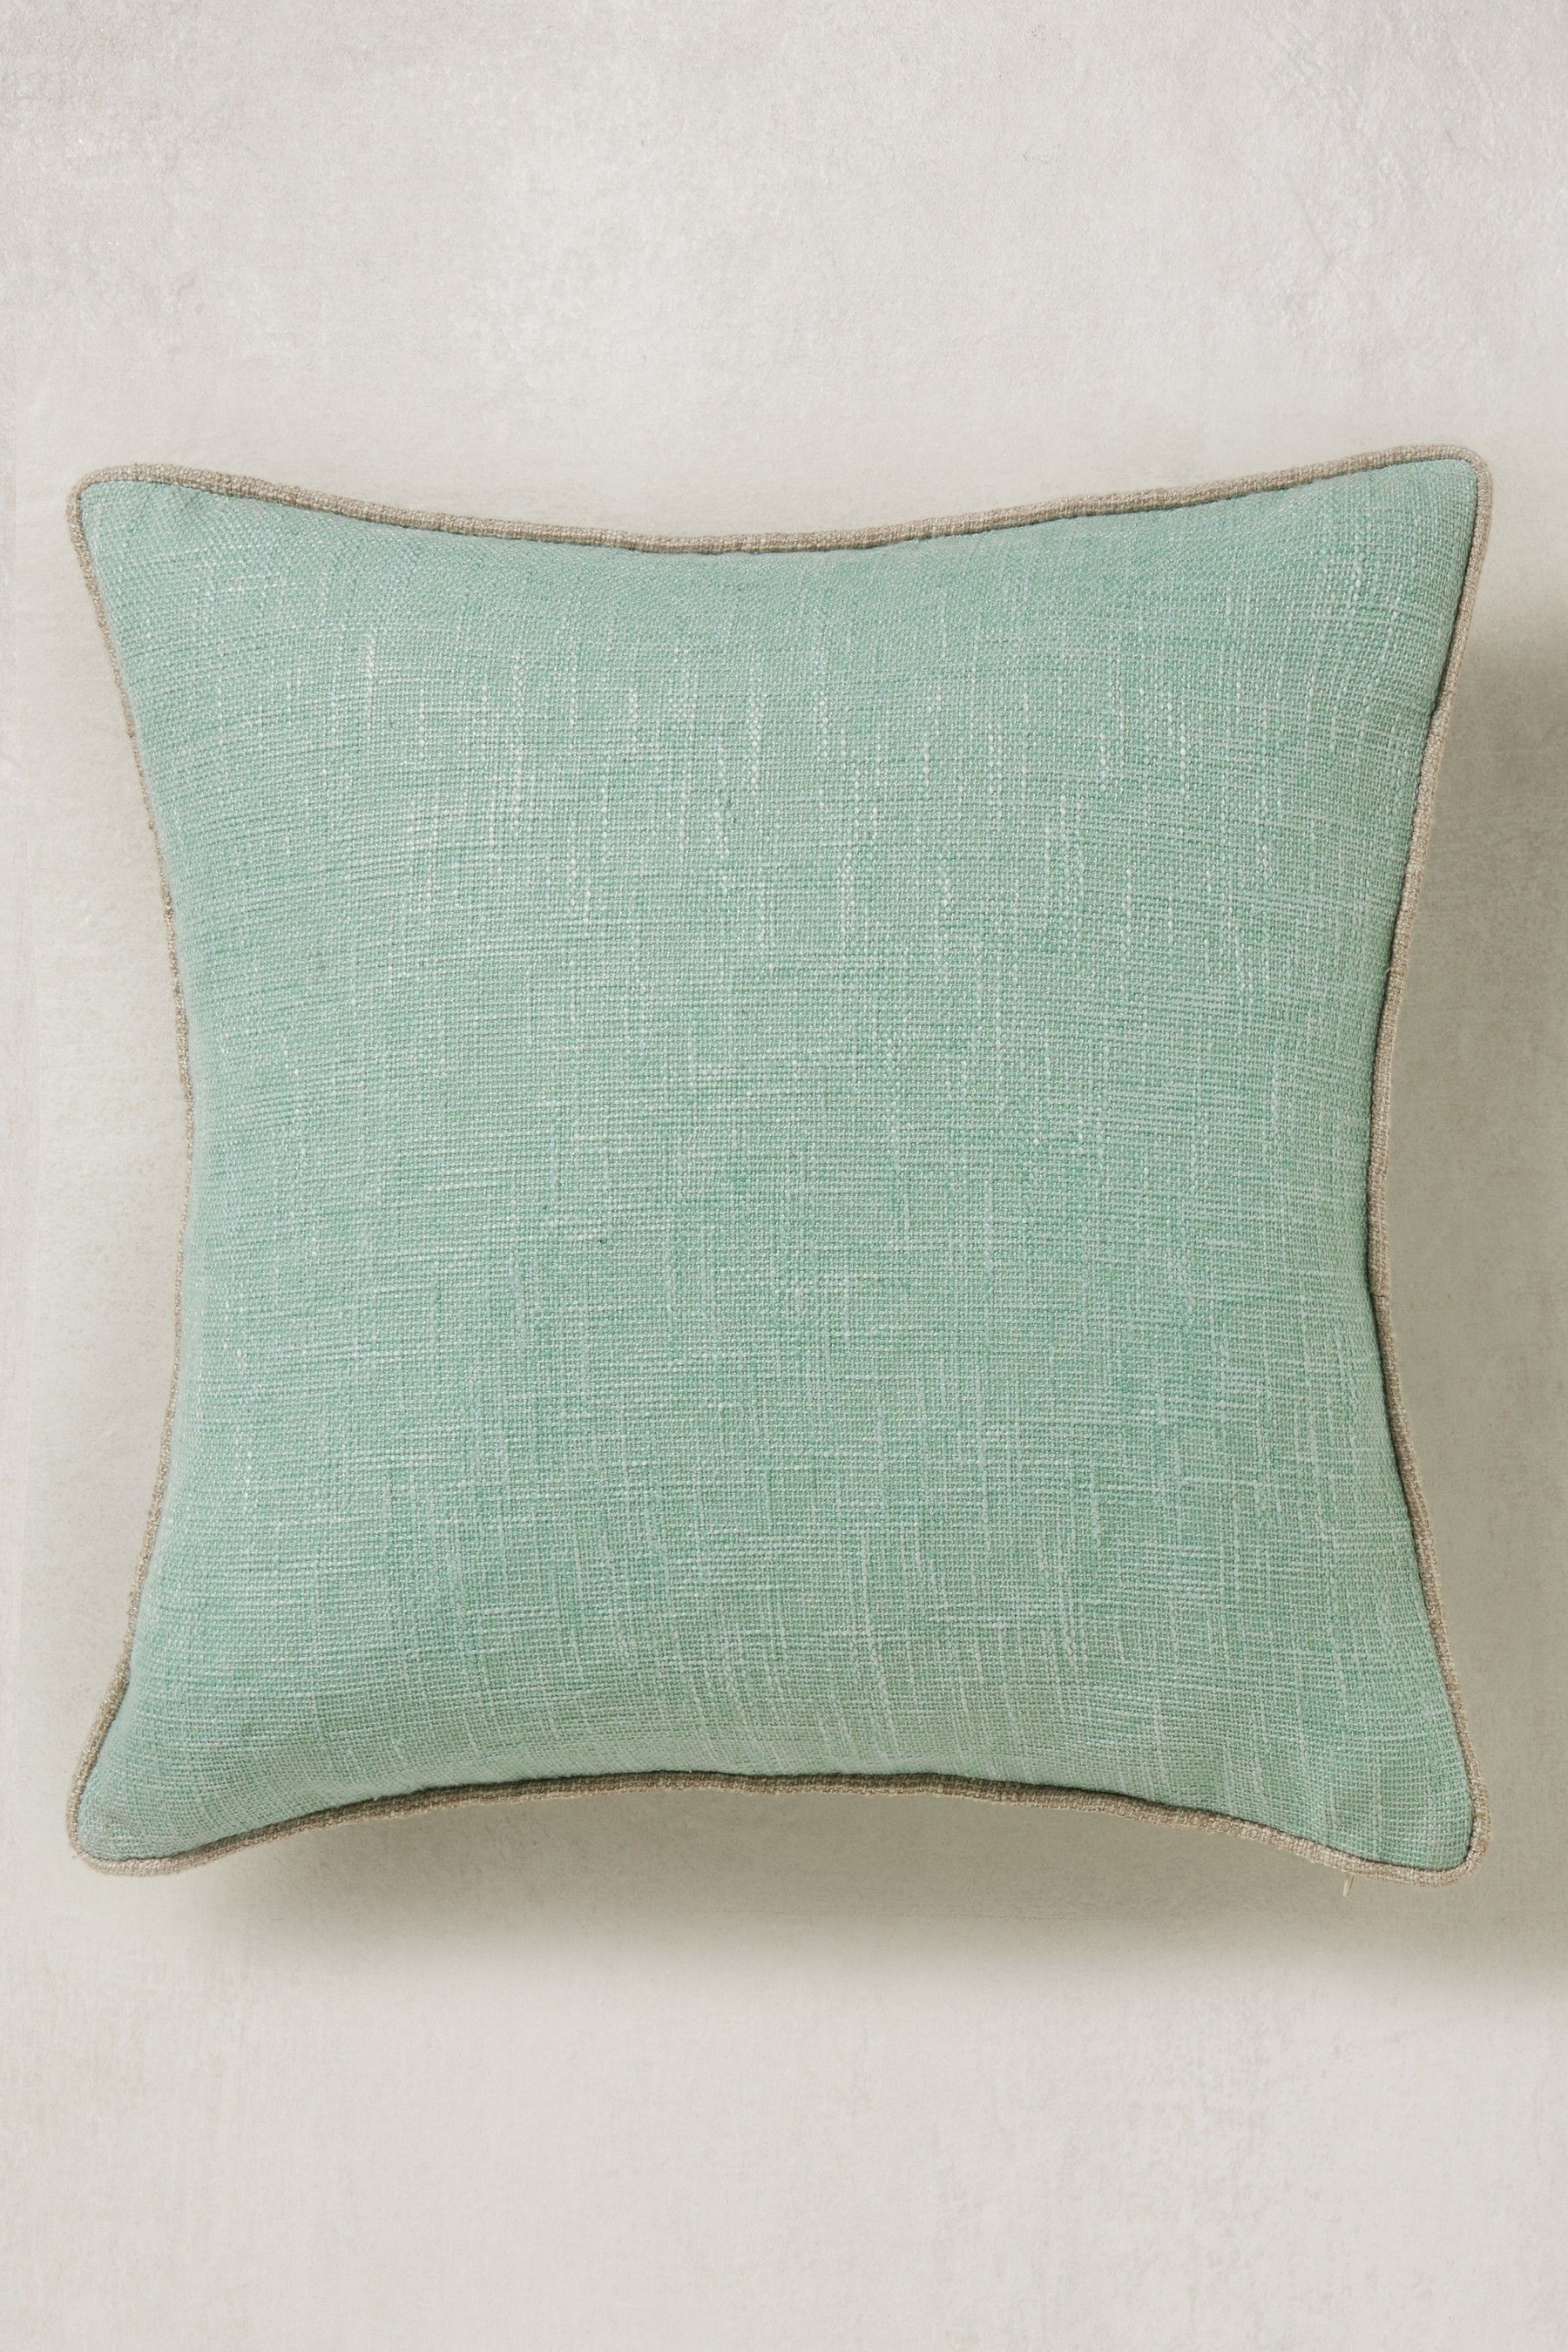 Next Boucle Cushion Teal Products In 2019 Cushions On Sofa